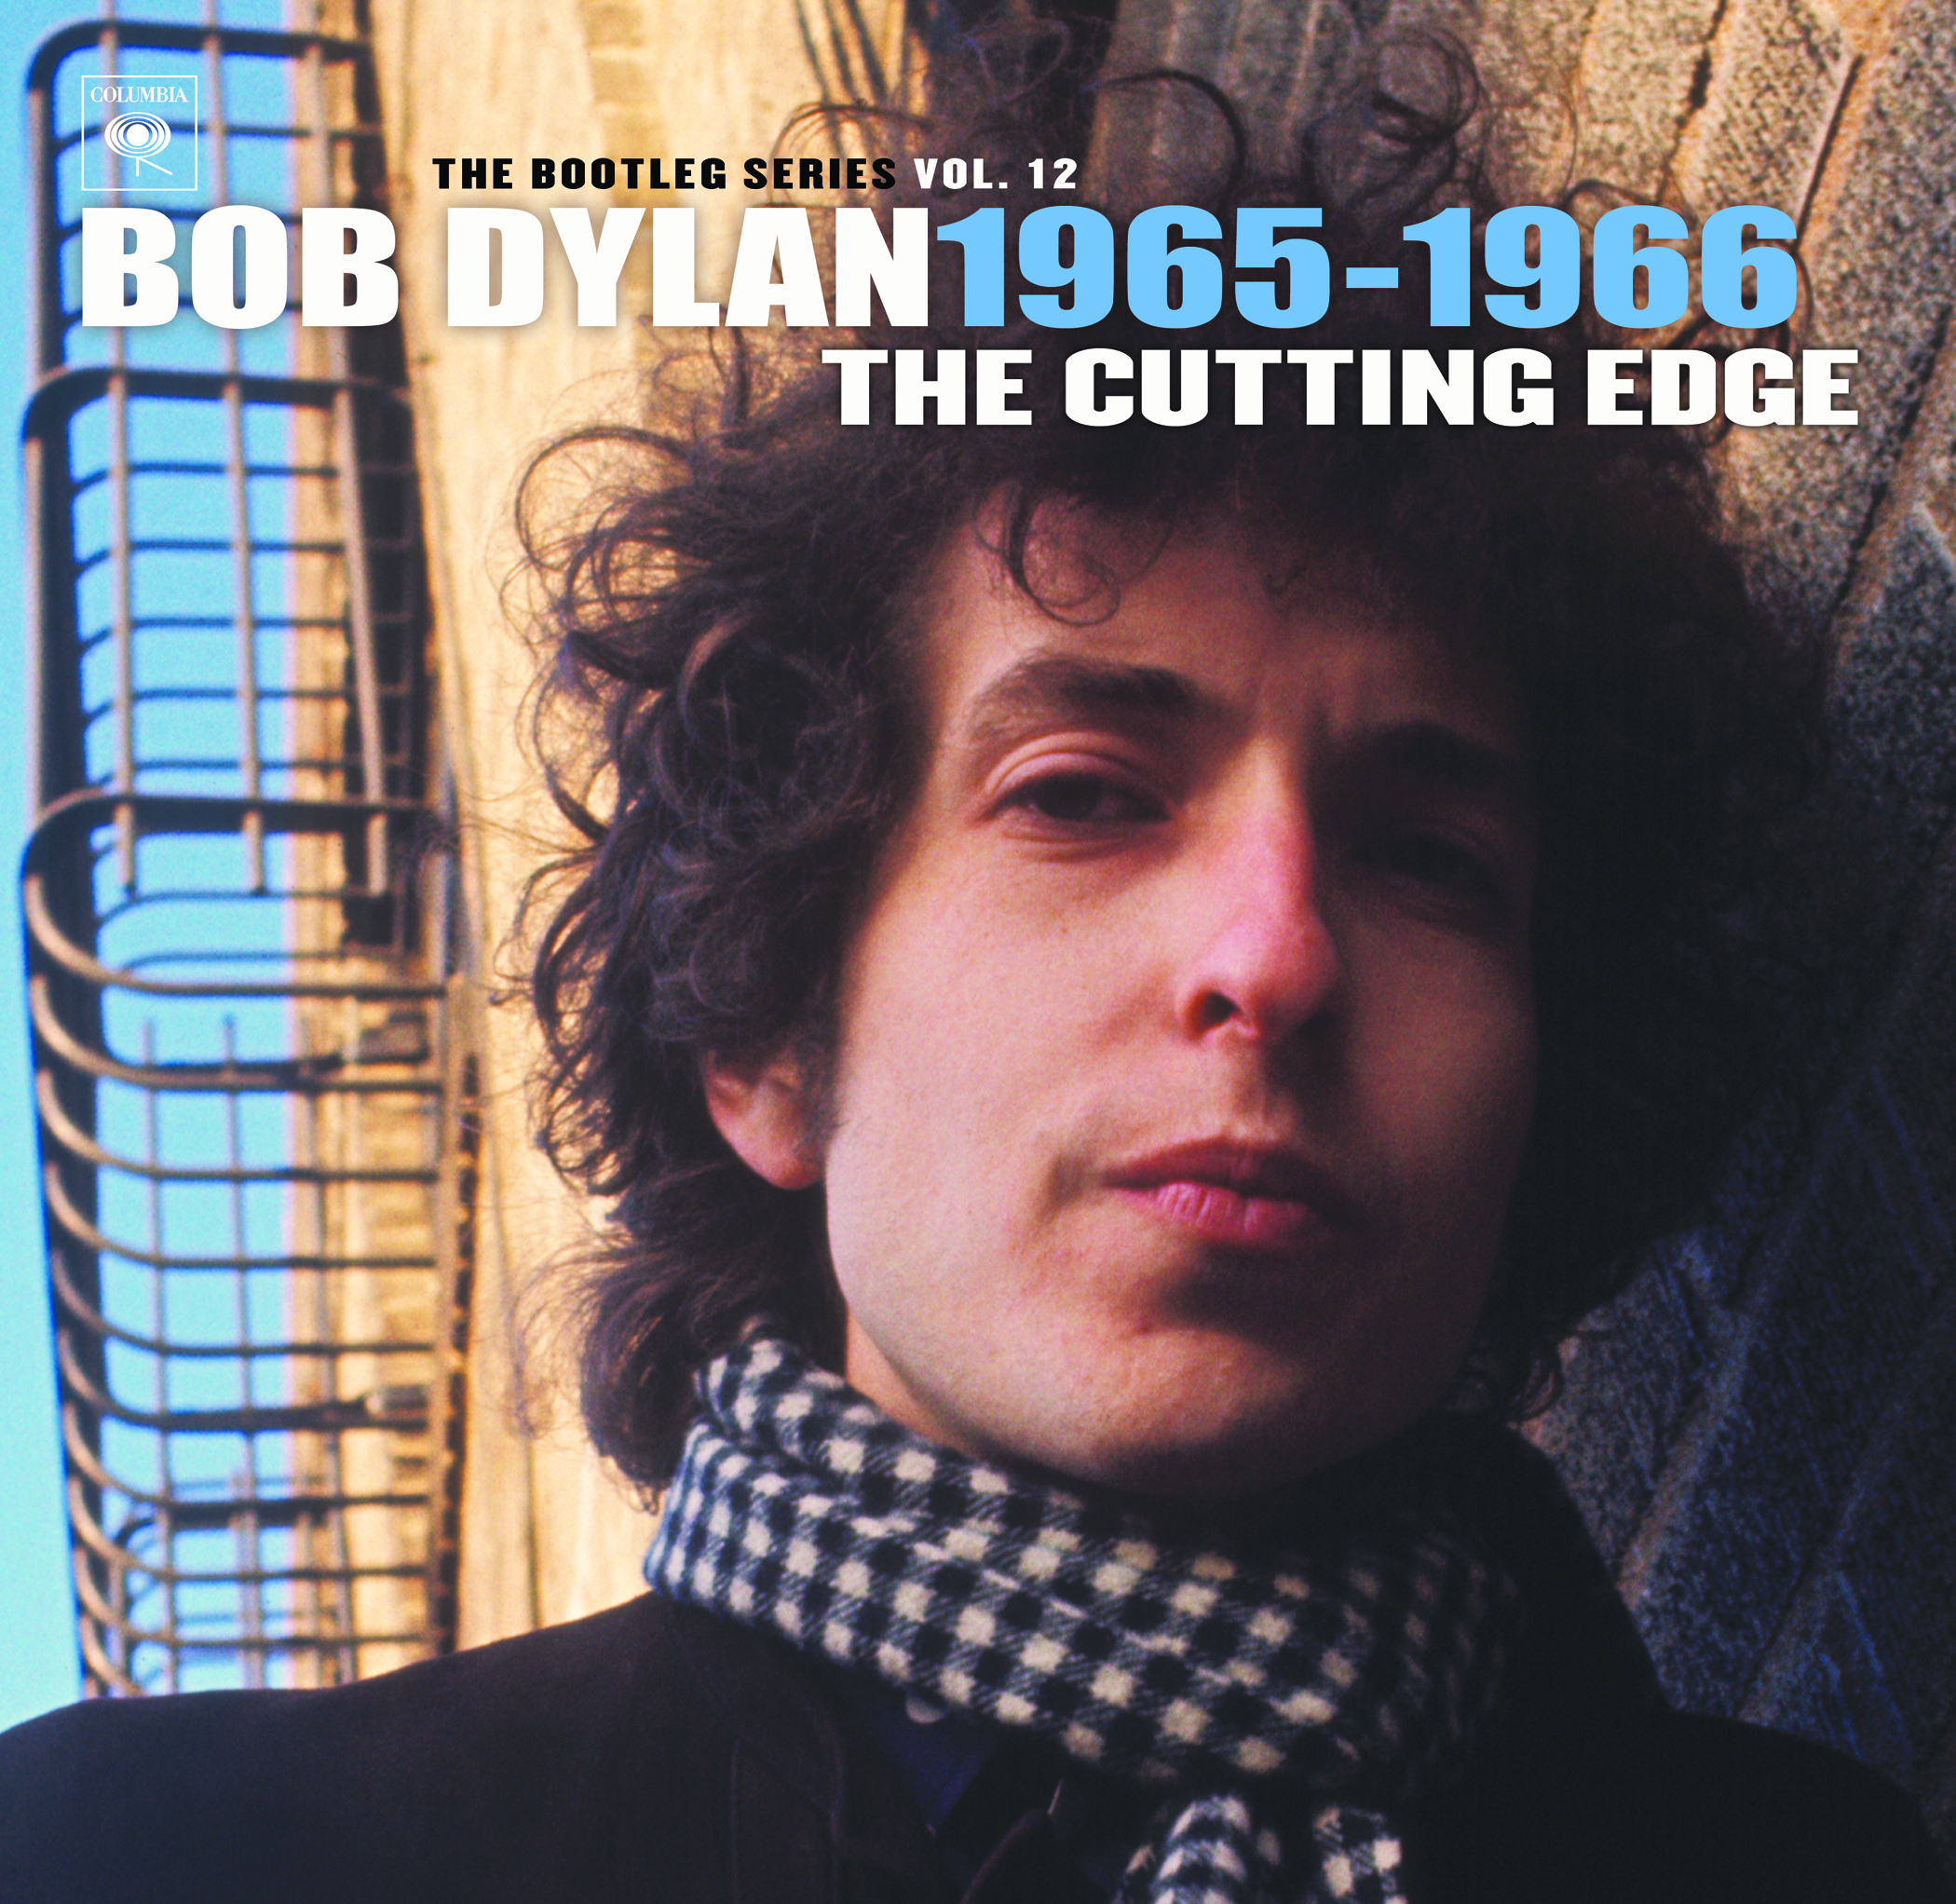 Listen: Alternative Take Of Bob Dylan's 'Just Like A Woman' Off 'The Cutting Edge'